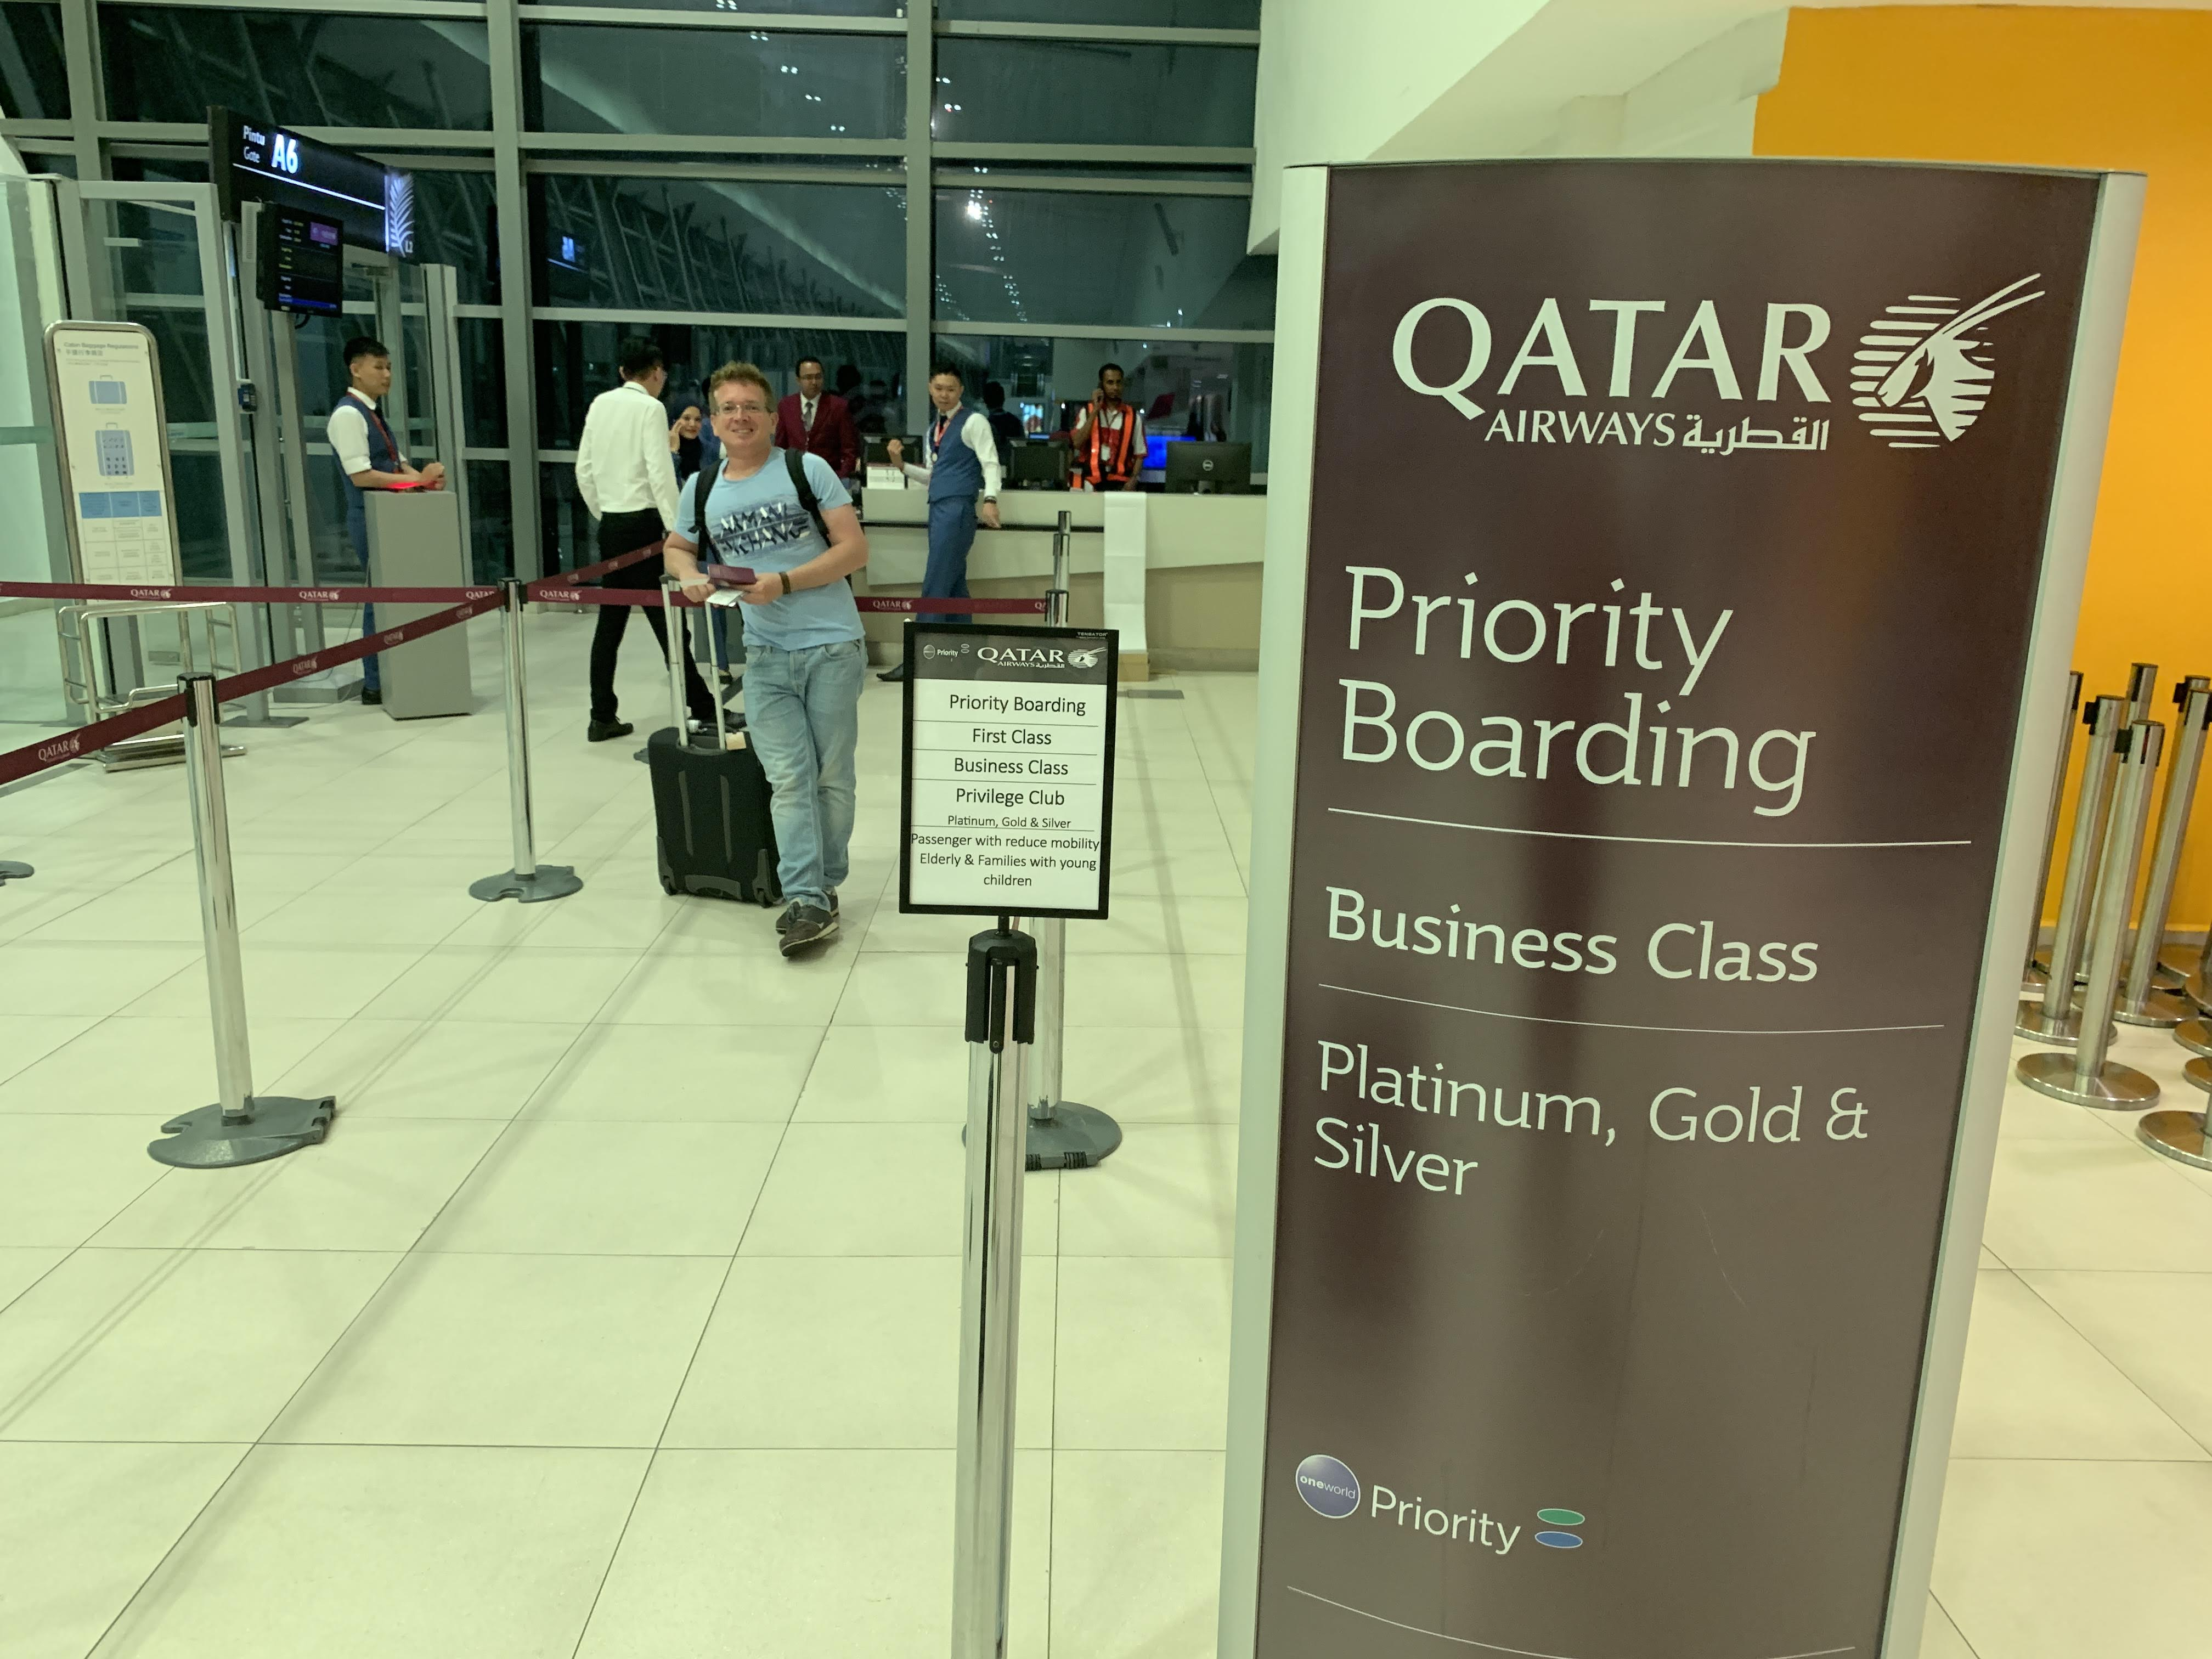 A330 qatar business class review boarding gate Penang